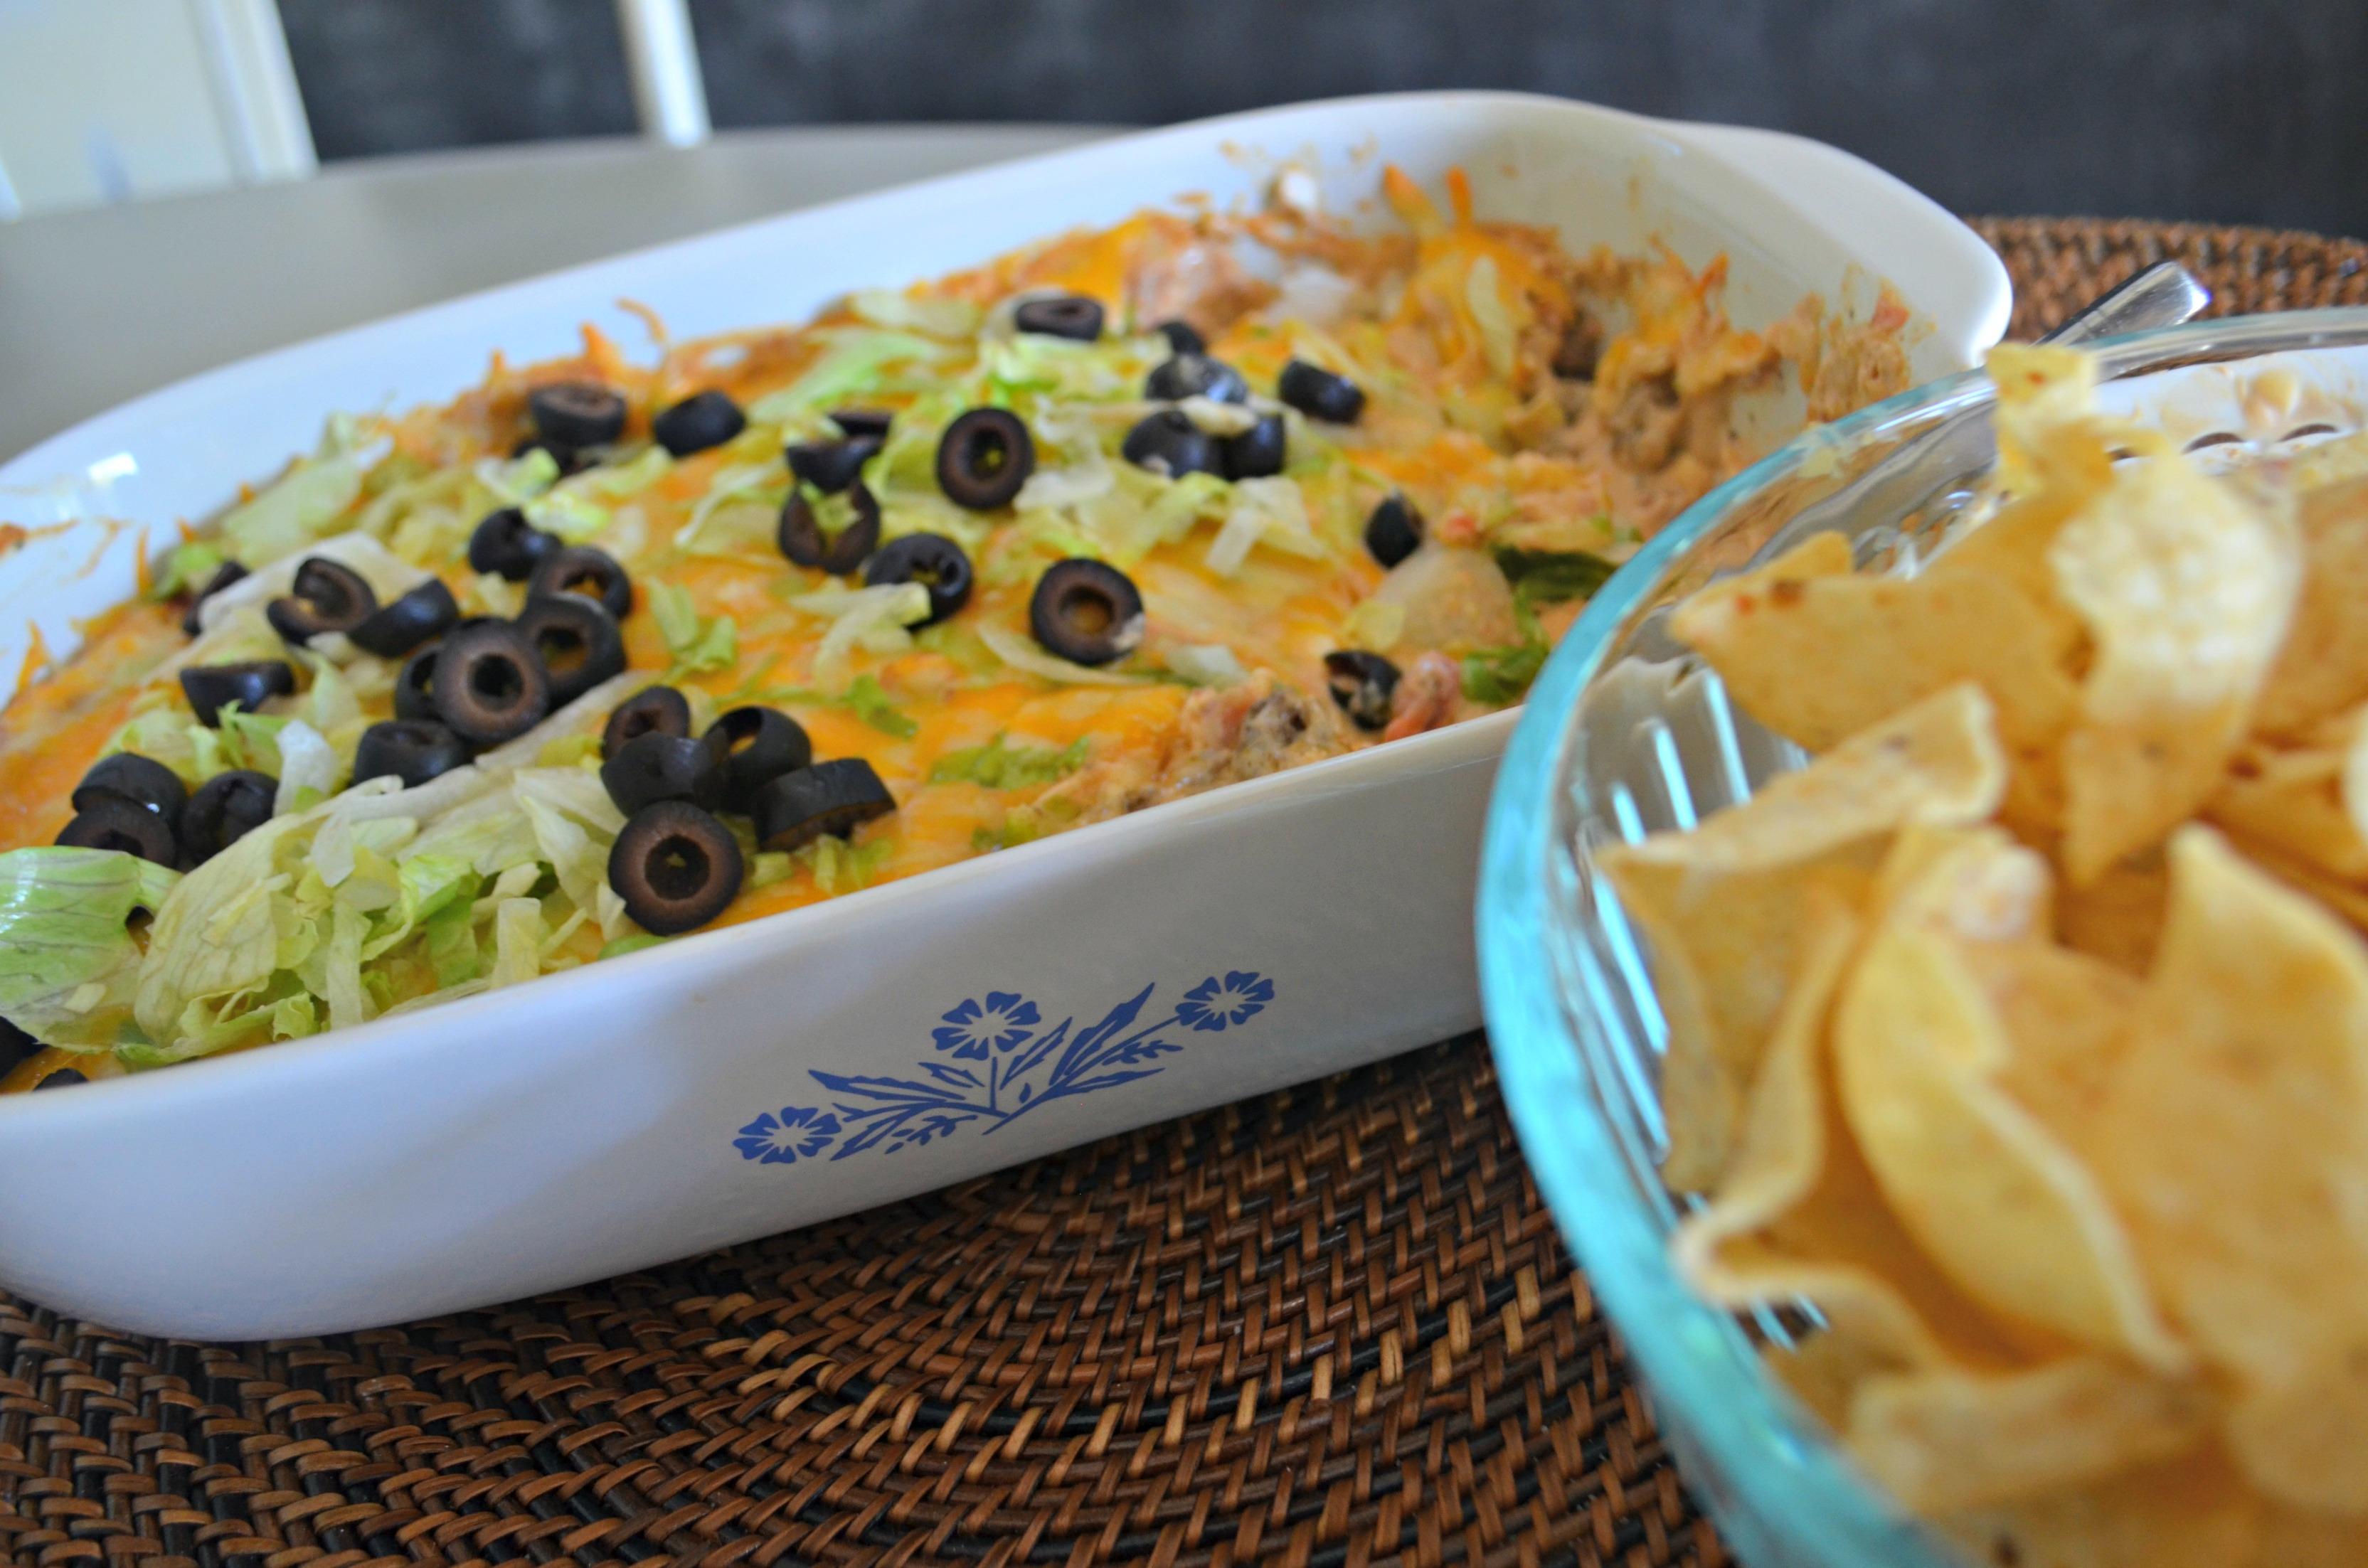 The baked taco dip in the baking dish with chips nearby.